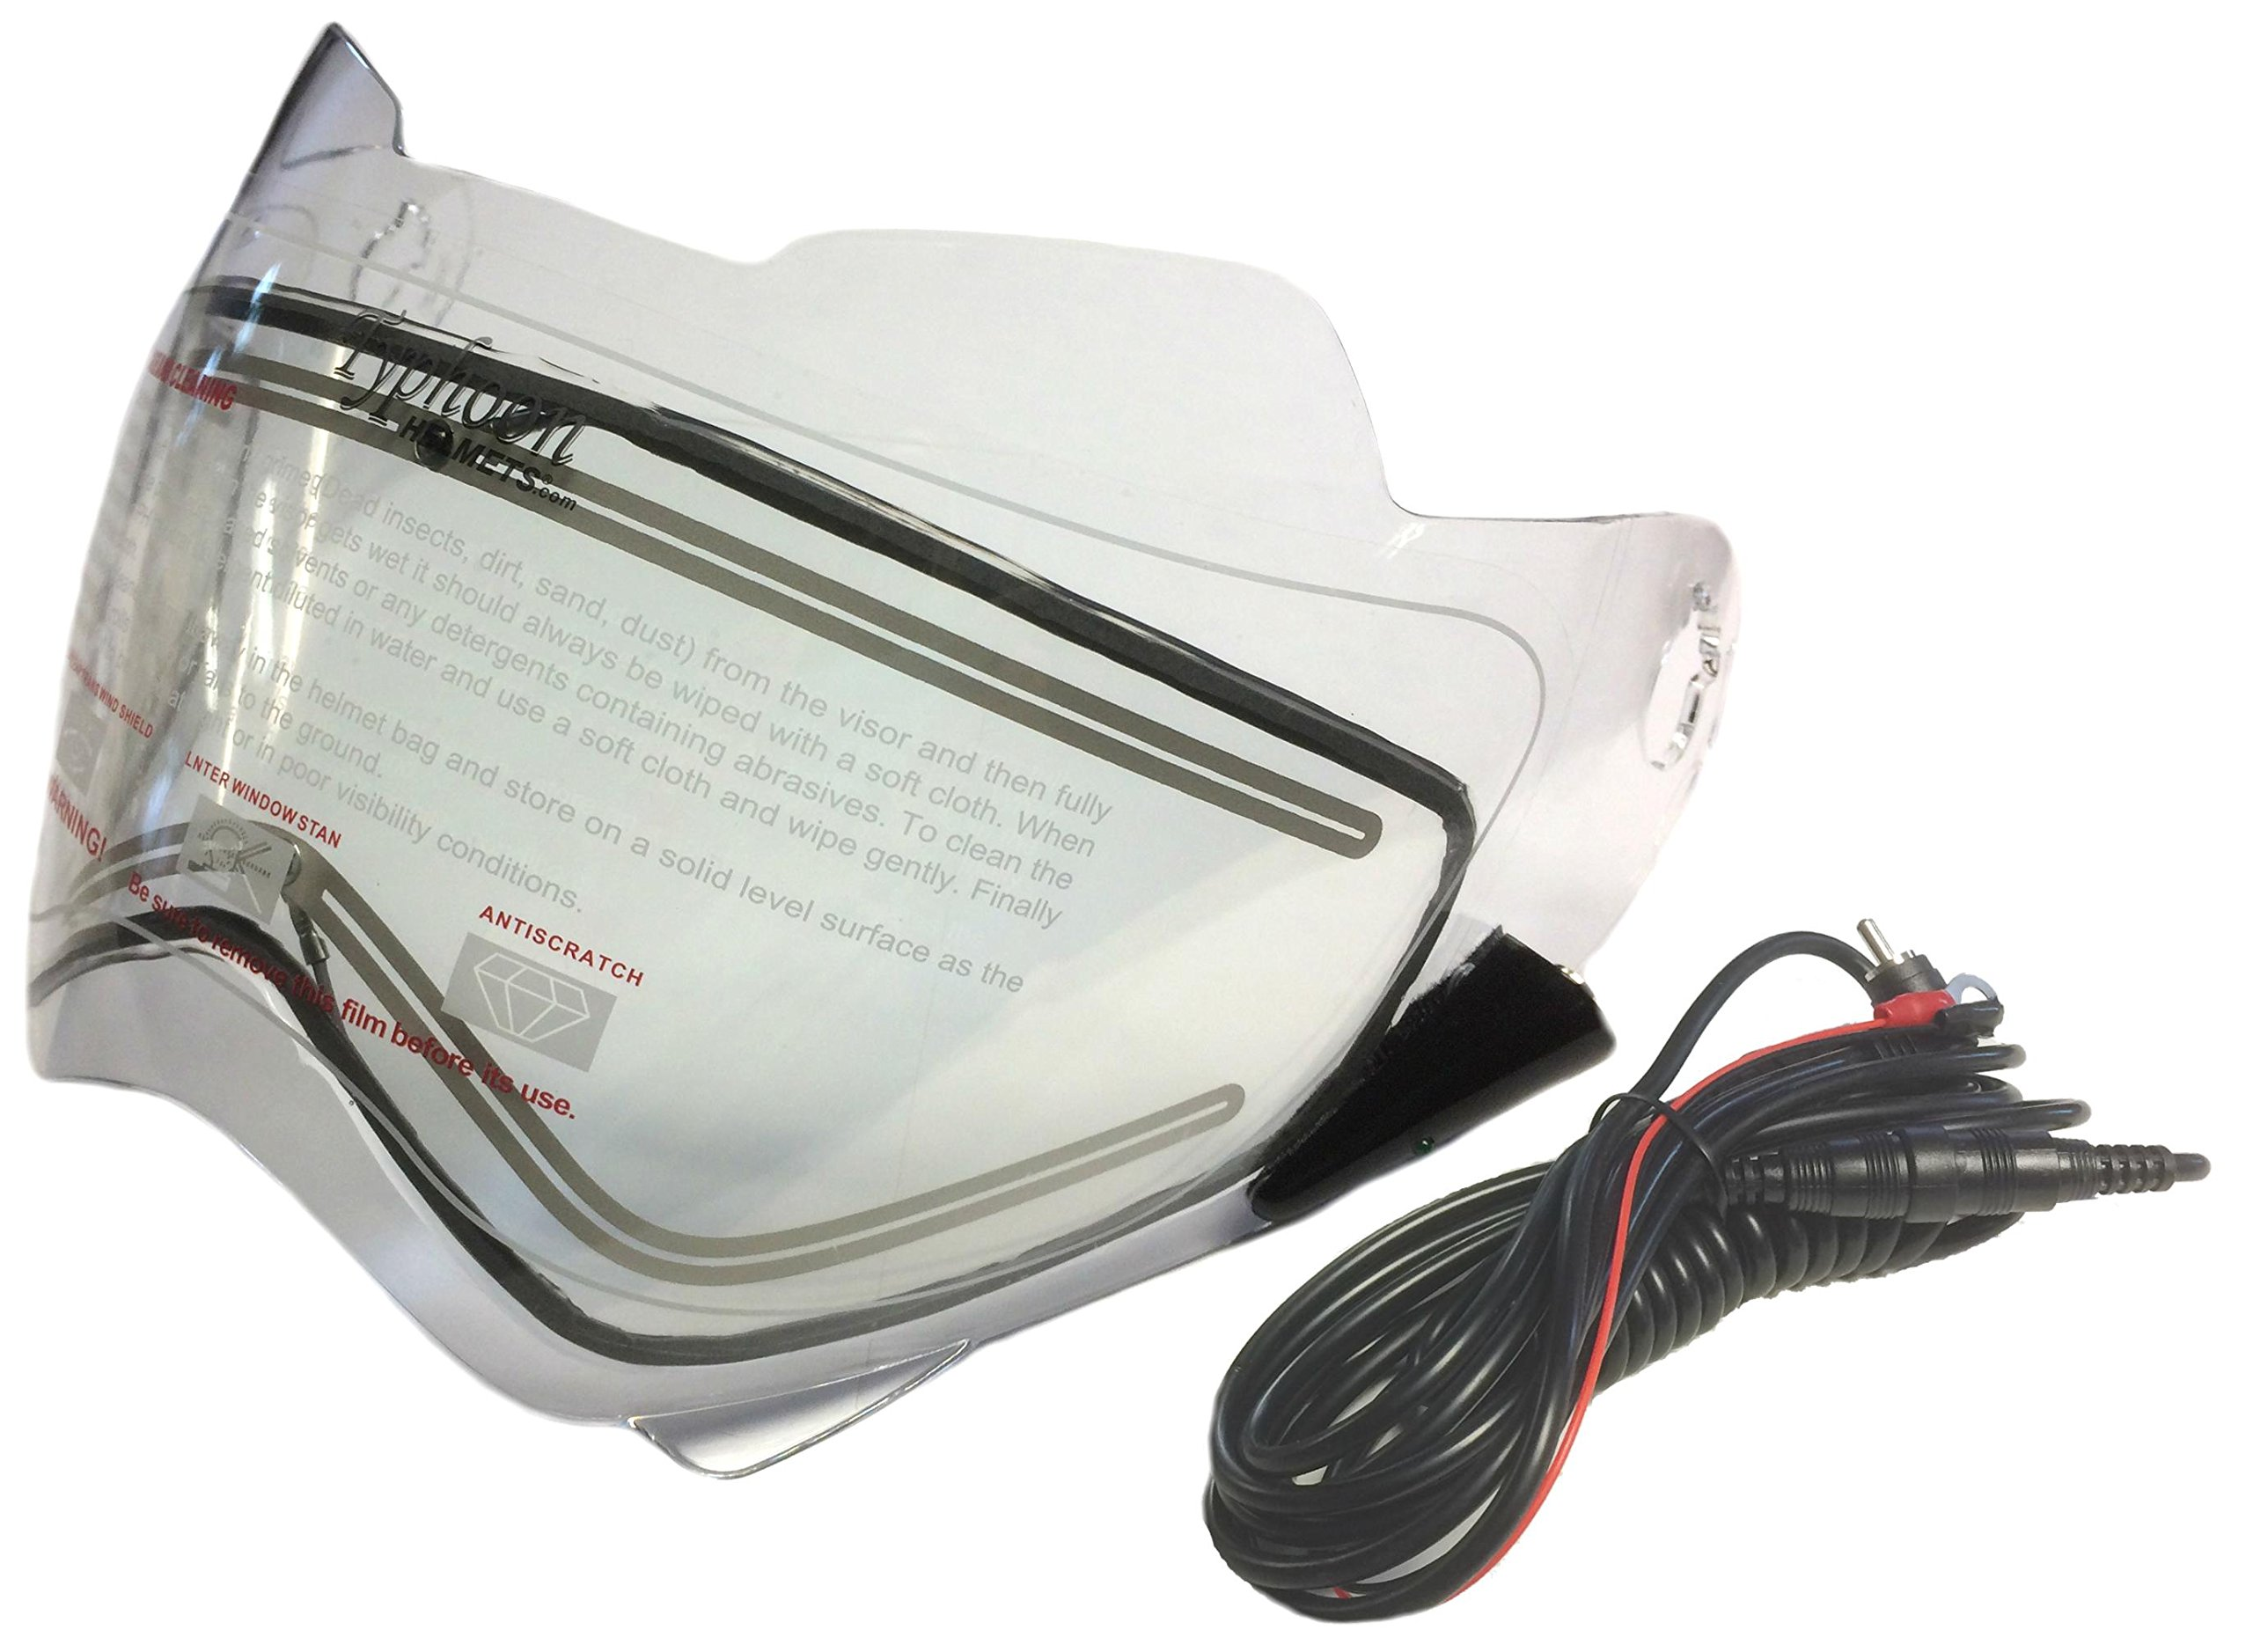 Electric Heated Shield and Cord for Typhoon Helmets XP14 Adult Dual Sport Helmet by Typhoon Helmets